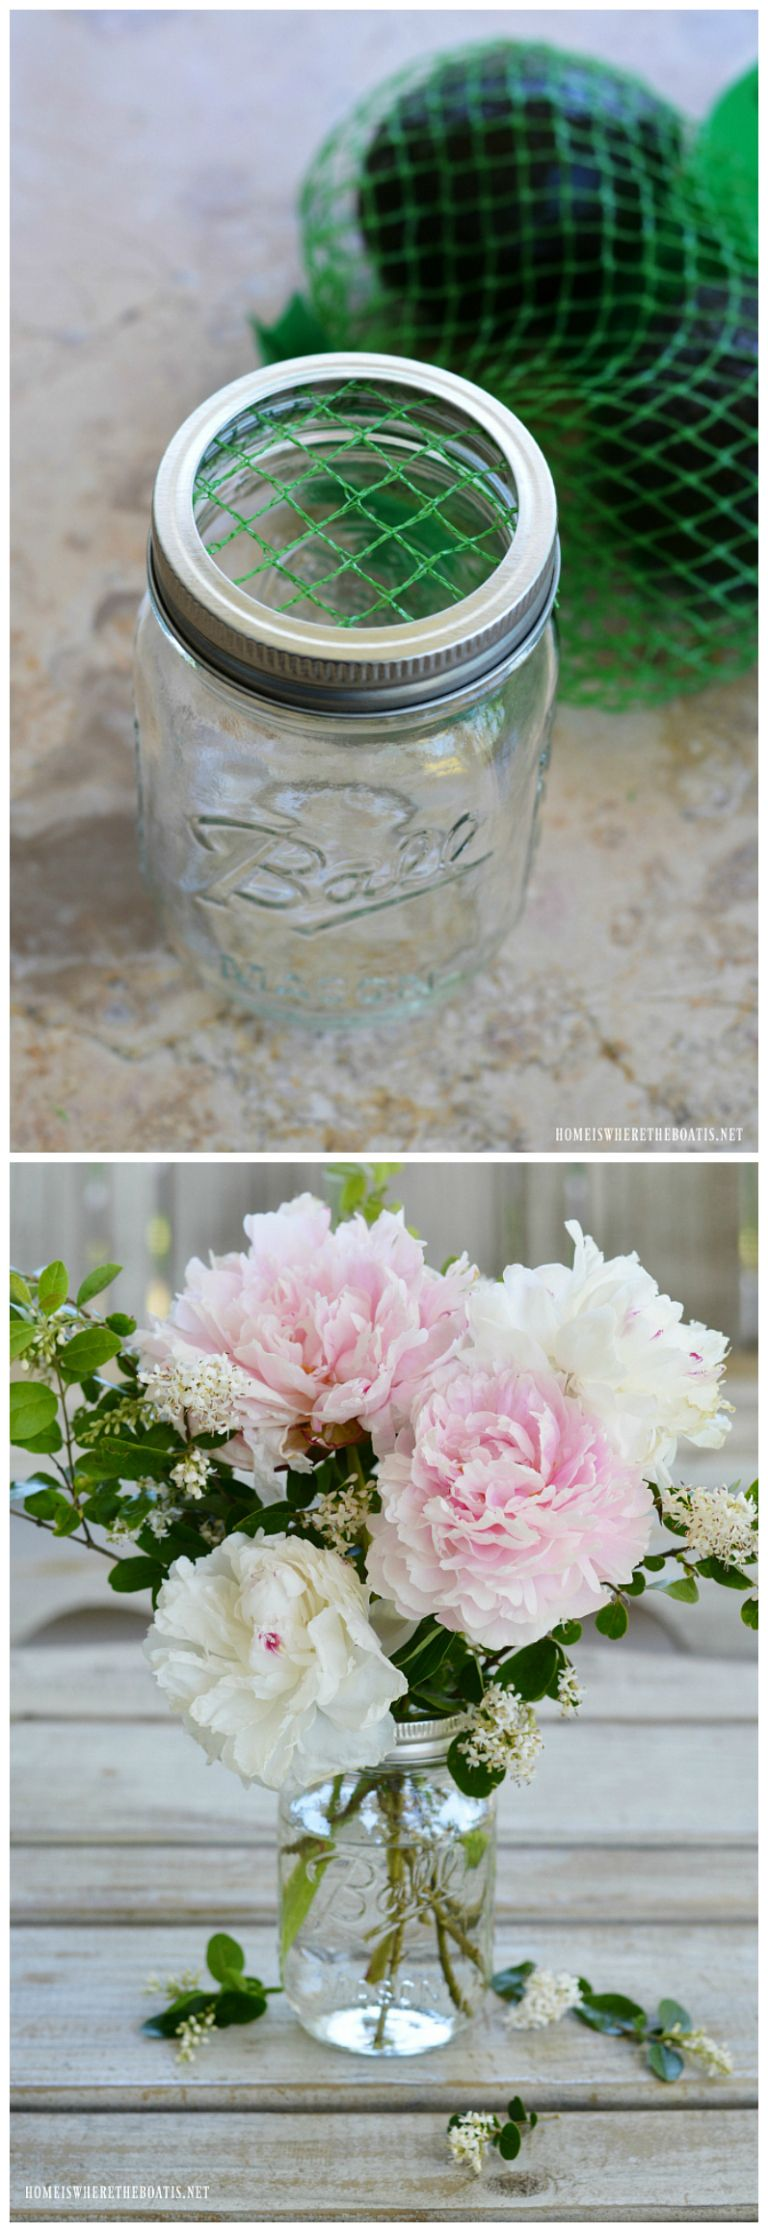 Flower Therapy Arranging Tips, Tricks, and Medicine for the Soul is part of Flower Therapy Arranging Tips Tricks And Medicine For The - Happy August! I gathered some flowers and floral arranging tips from the archives for a little flower therapy! I like to pick up flowers at the Farmers Market in the summer for a flower fix     a …